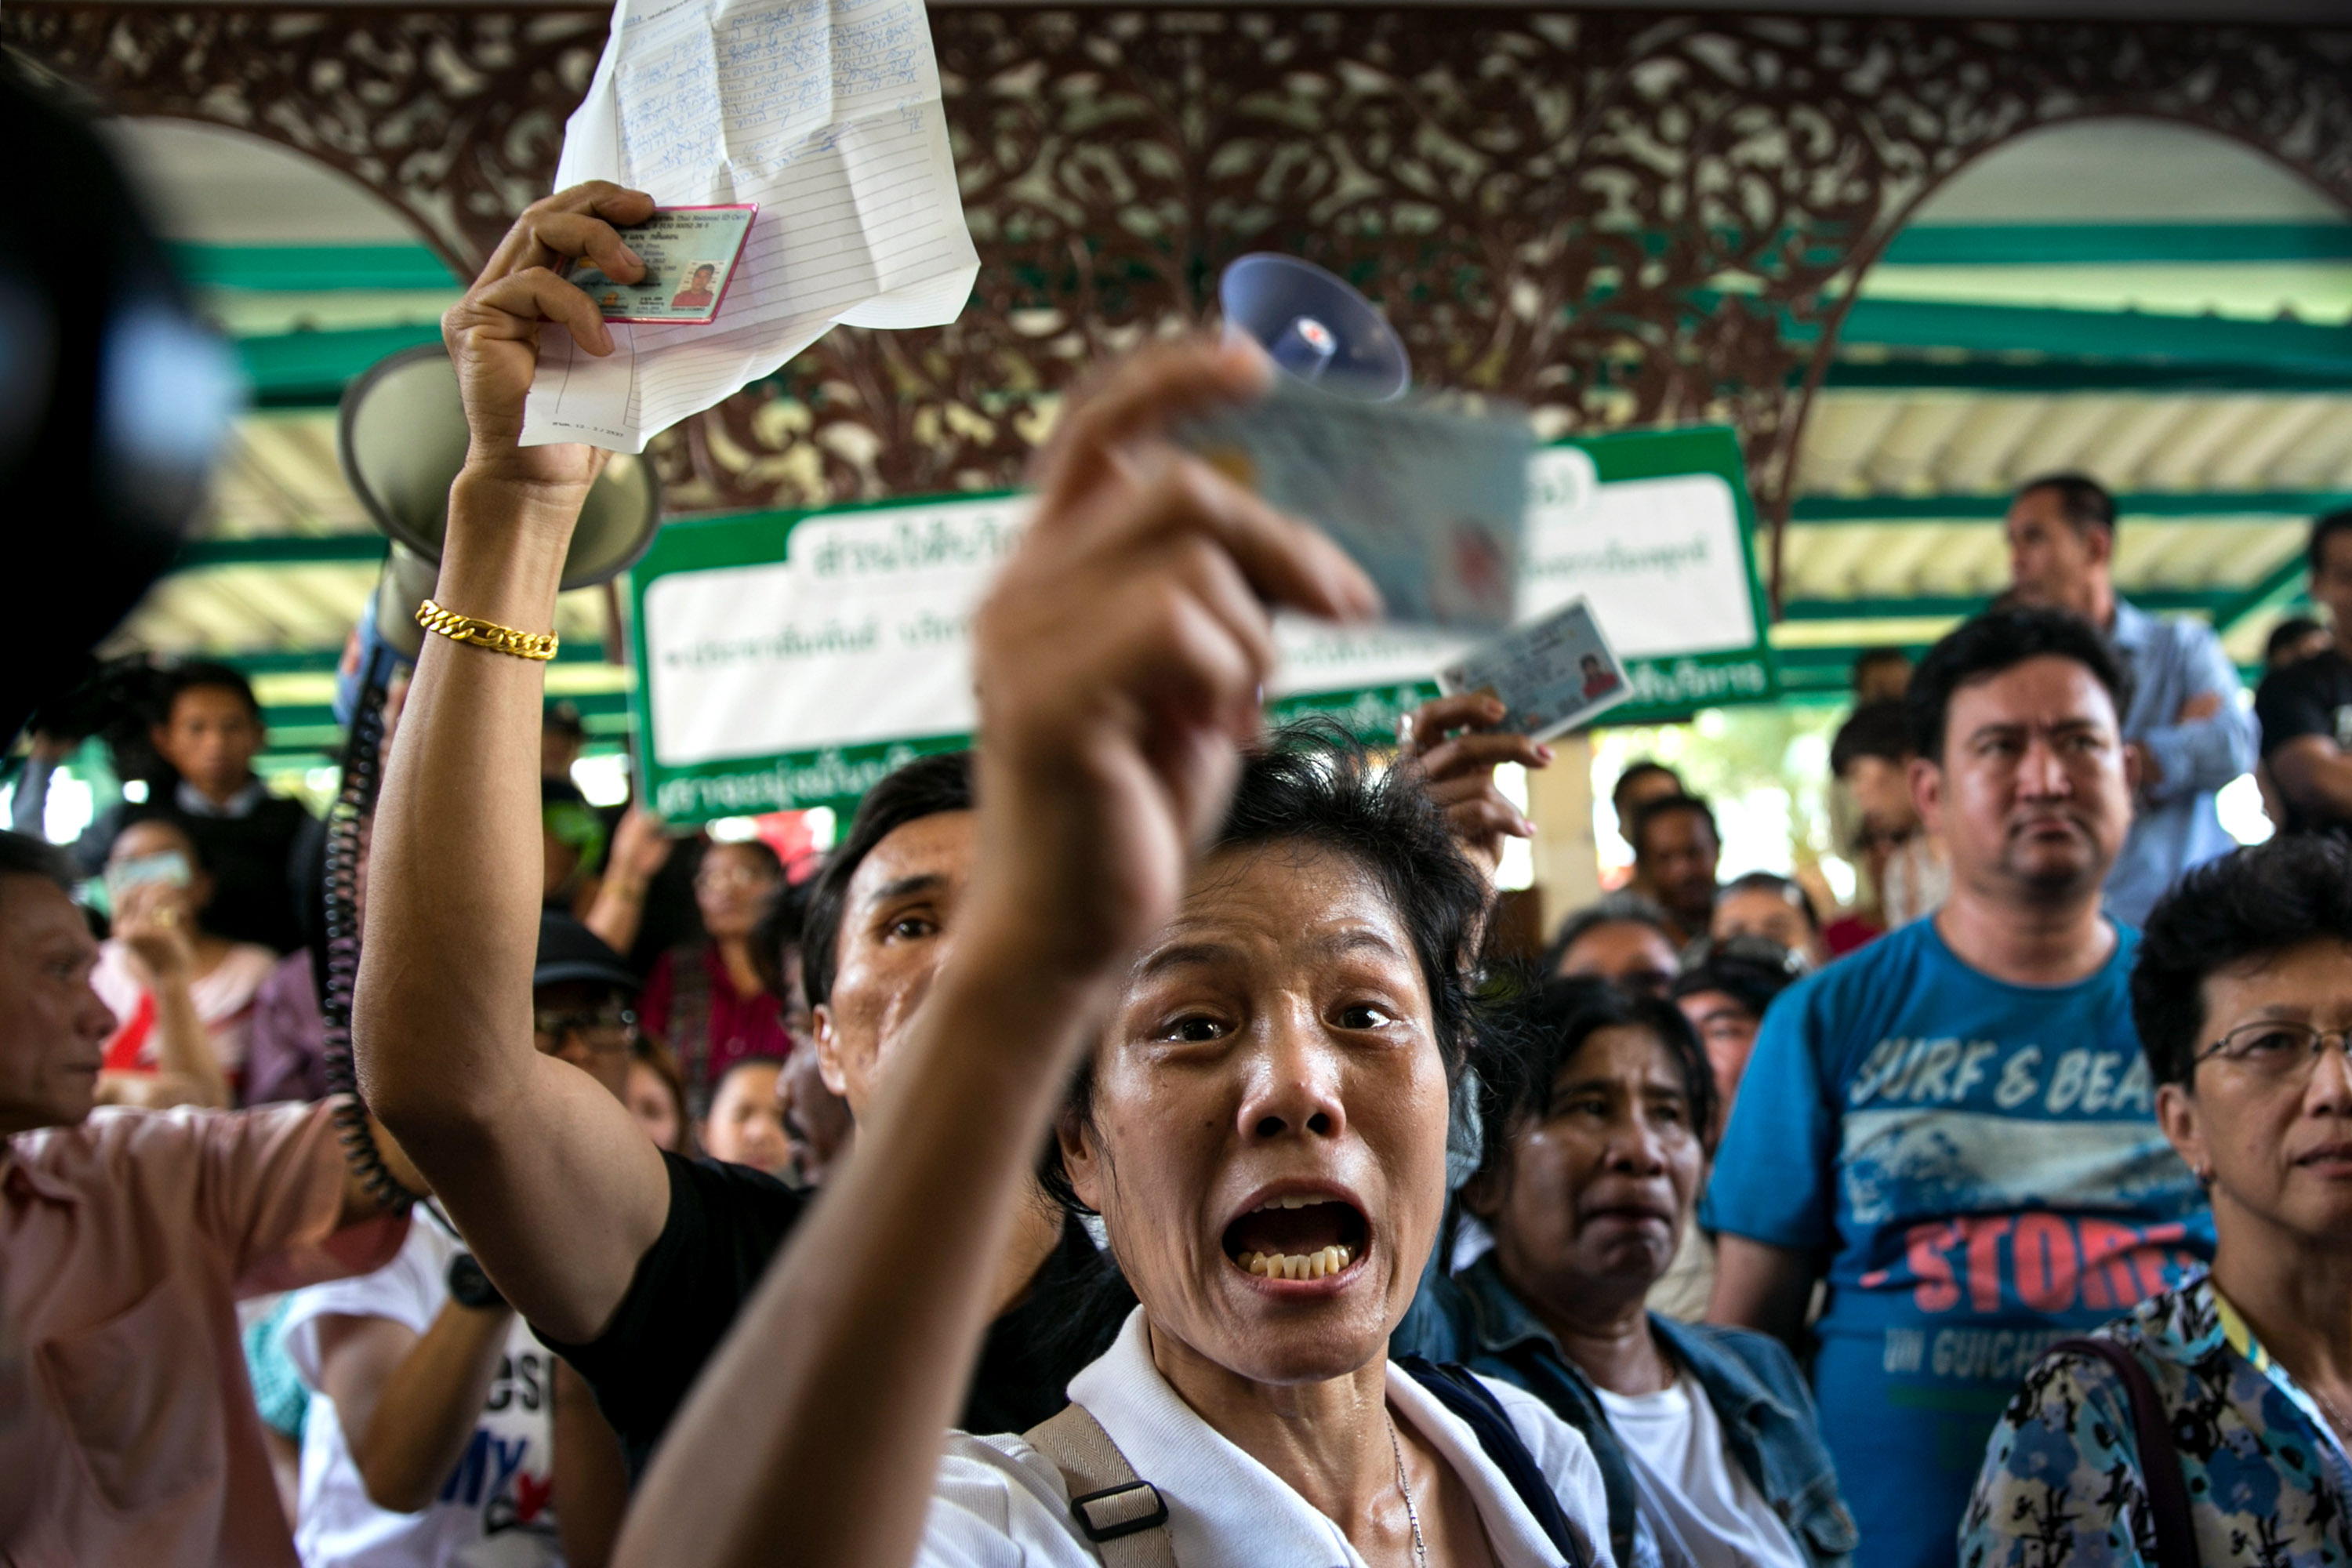 Voters in Bangkok express anger as they are unable to cast their ballots during Thailand's general elections on Feb. 2, 2014. Many polling stations were blocked by protesters